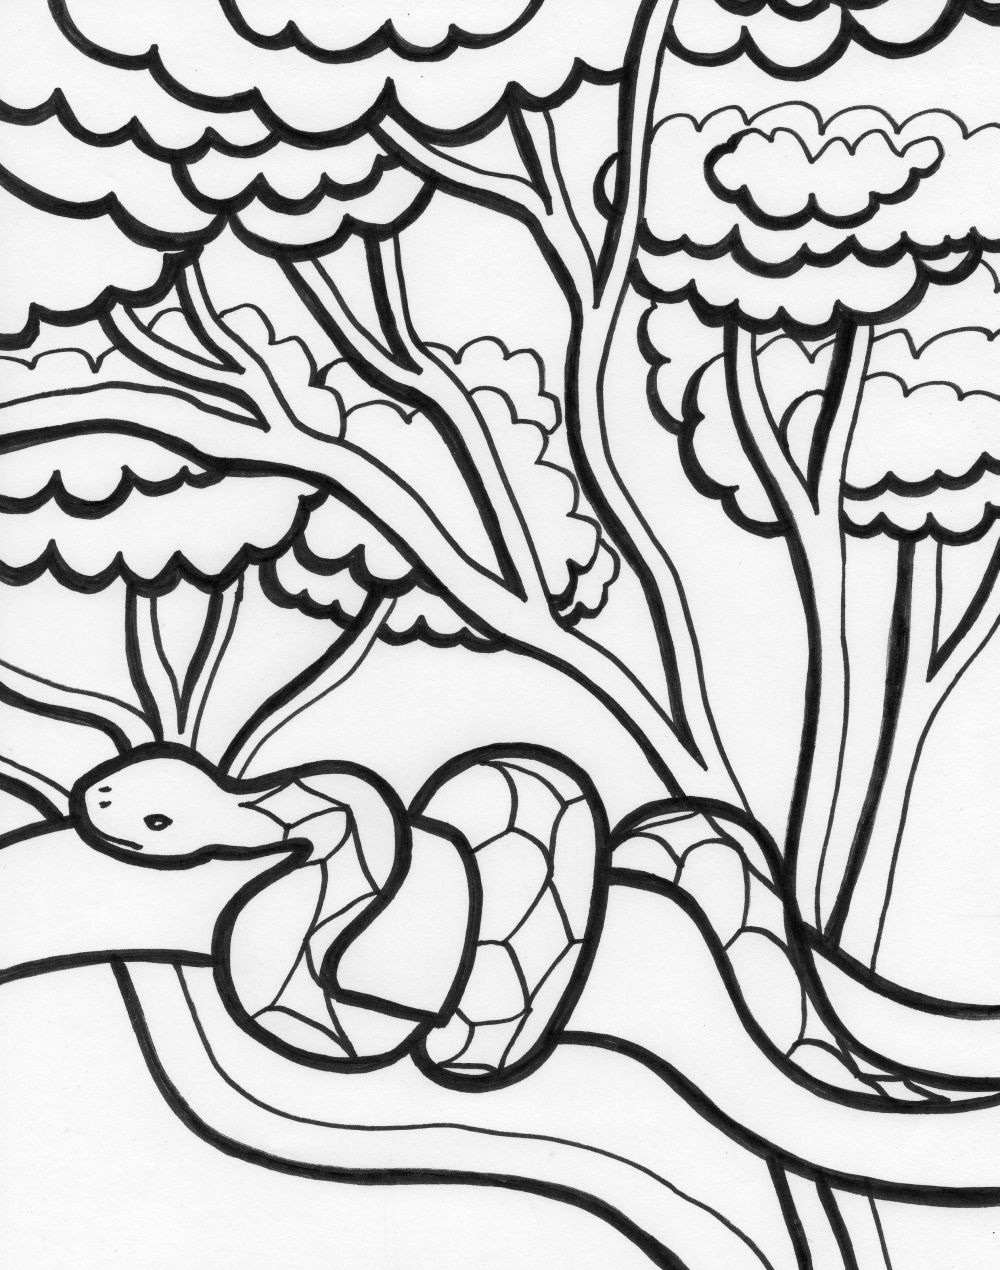 Snake Coloring Pages (14)